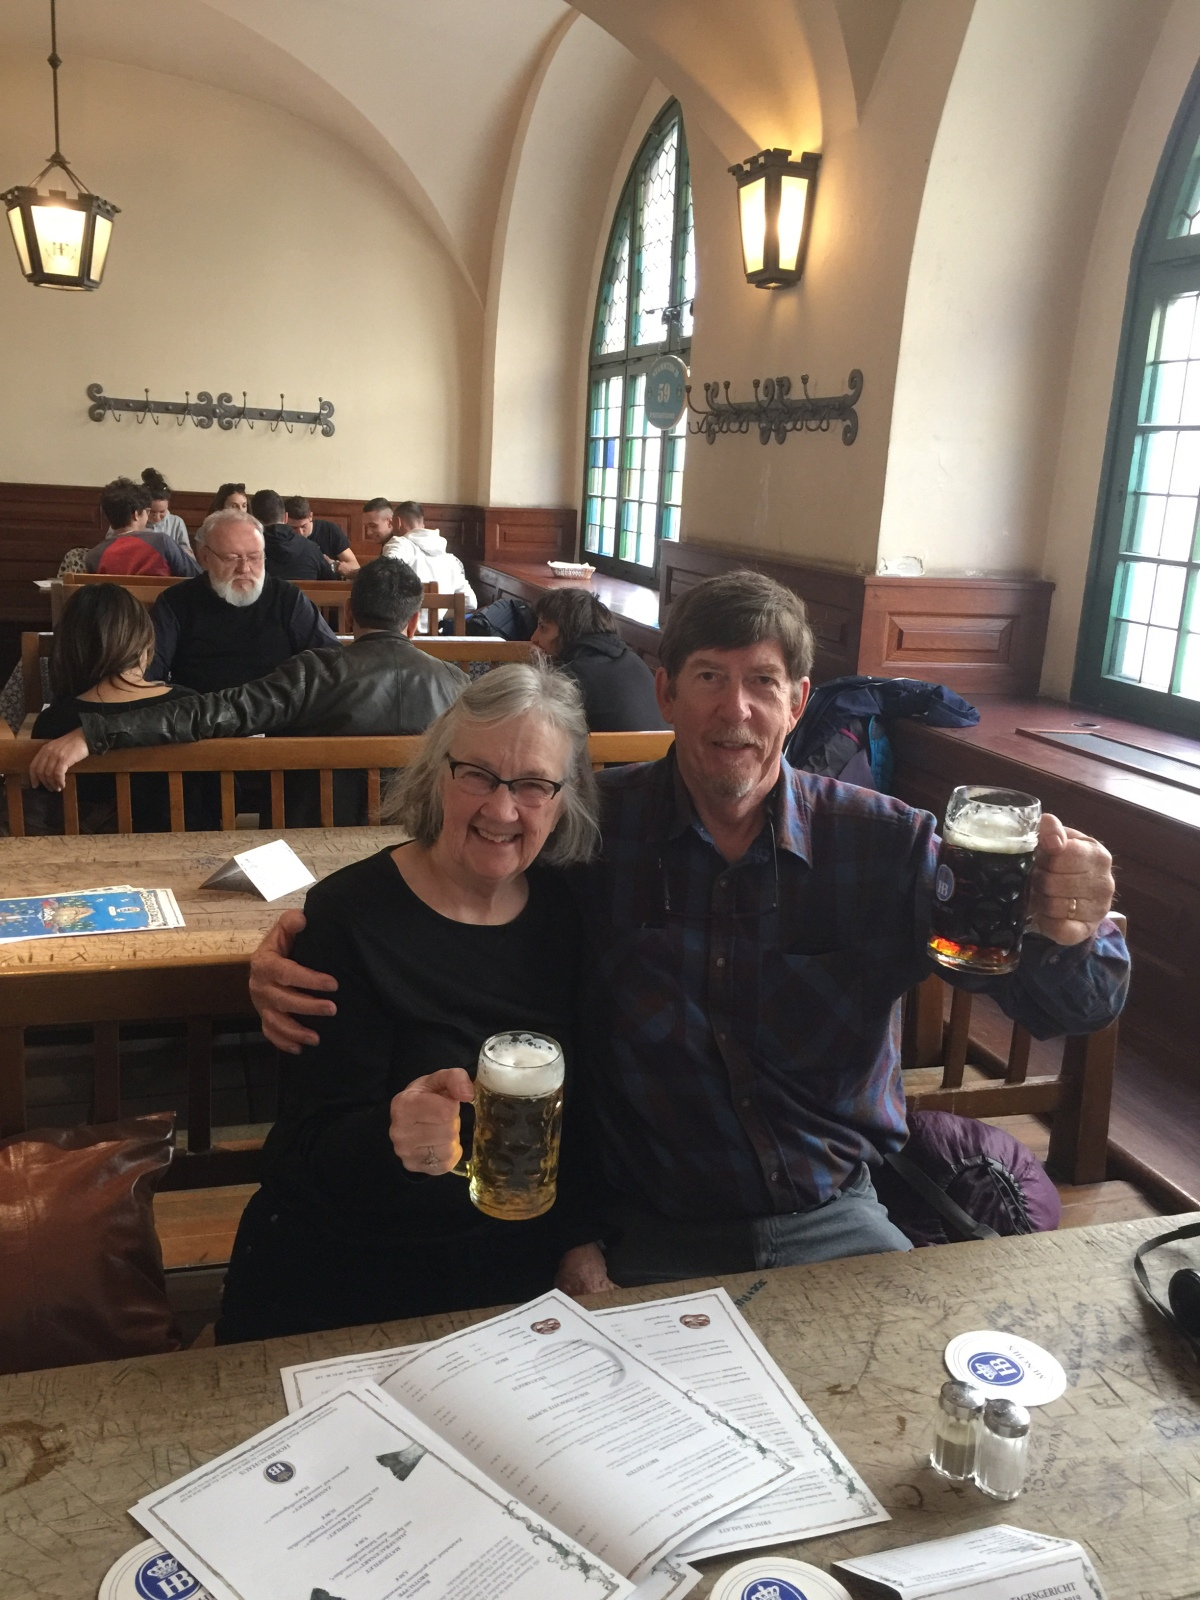 Munich – 3 April 2019